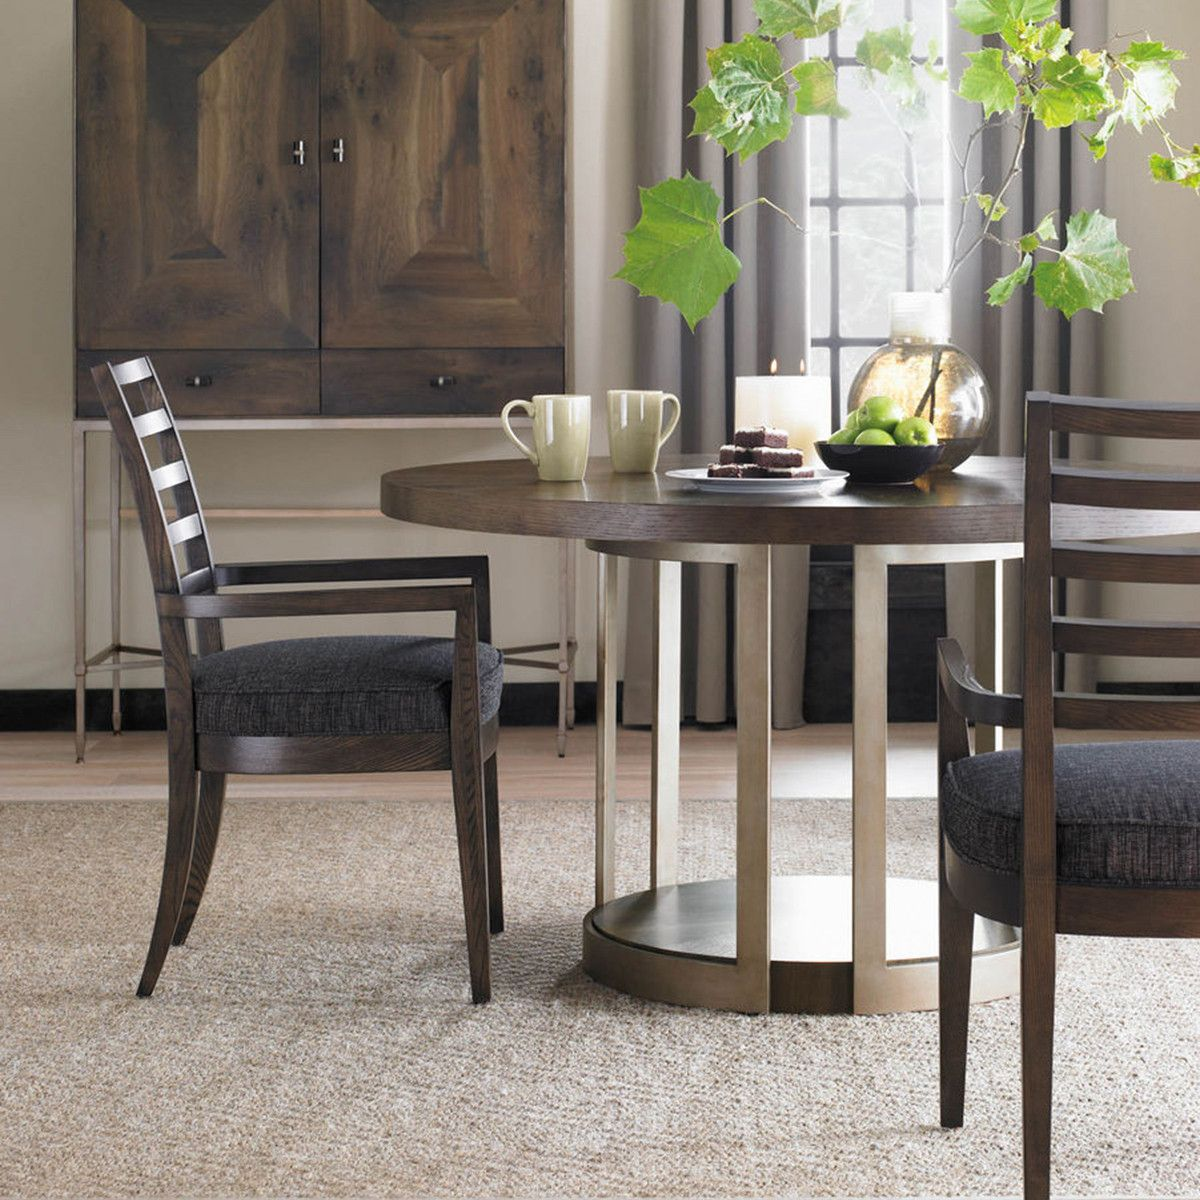 Contemporary Round Dining Room Tables Stunning My Manhattan Round Dining Table Provides A Contemporary Dining Decorating Design